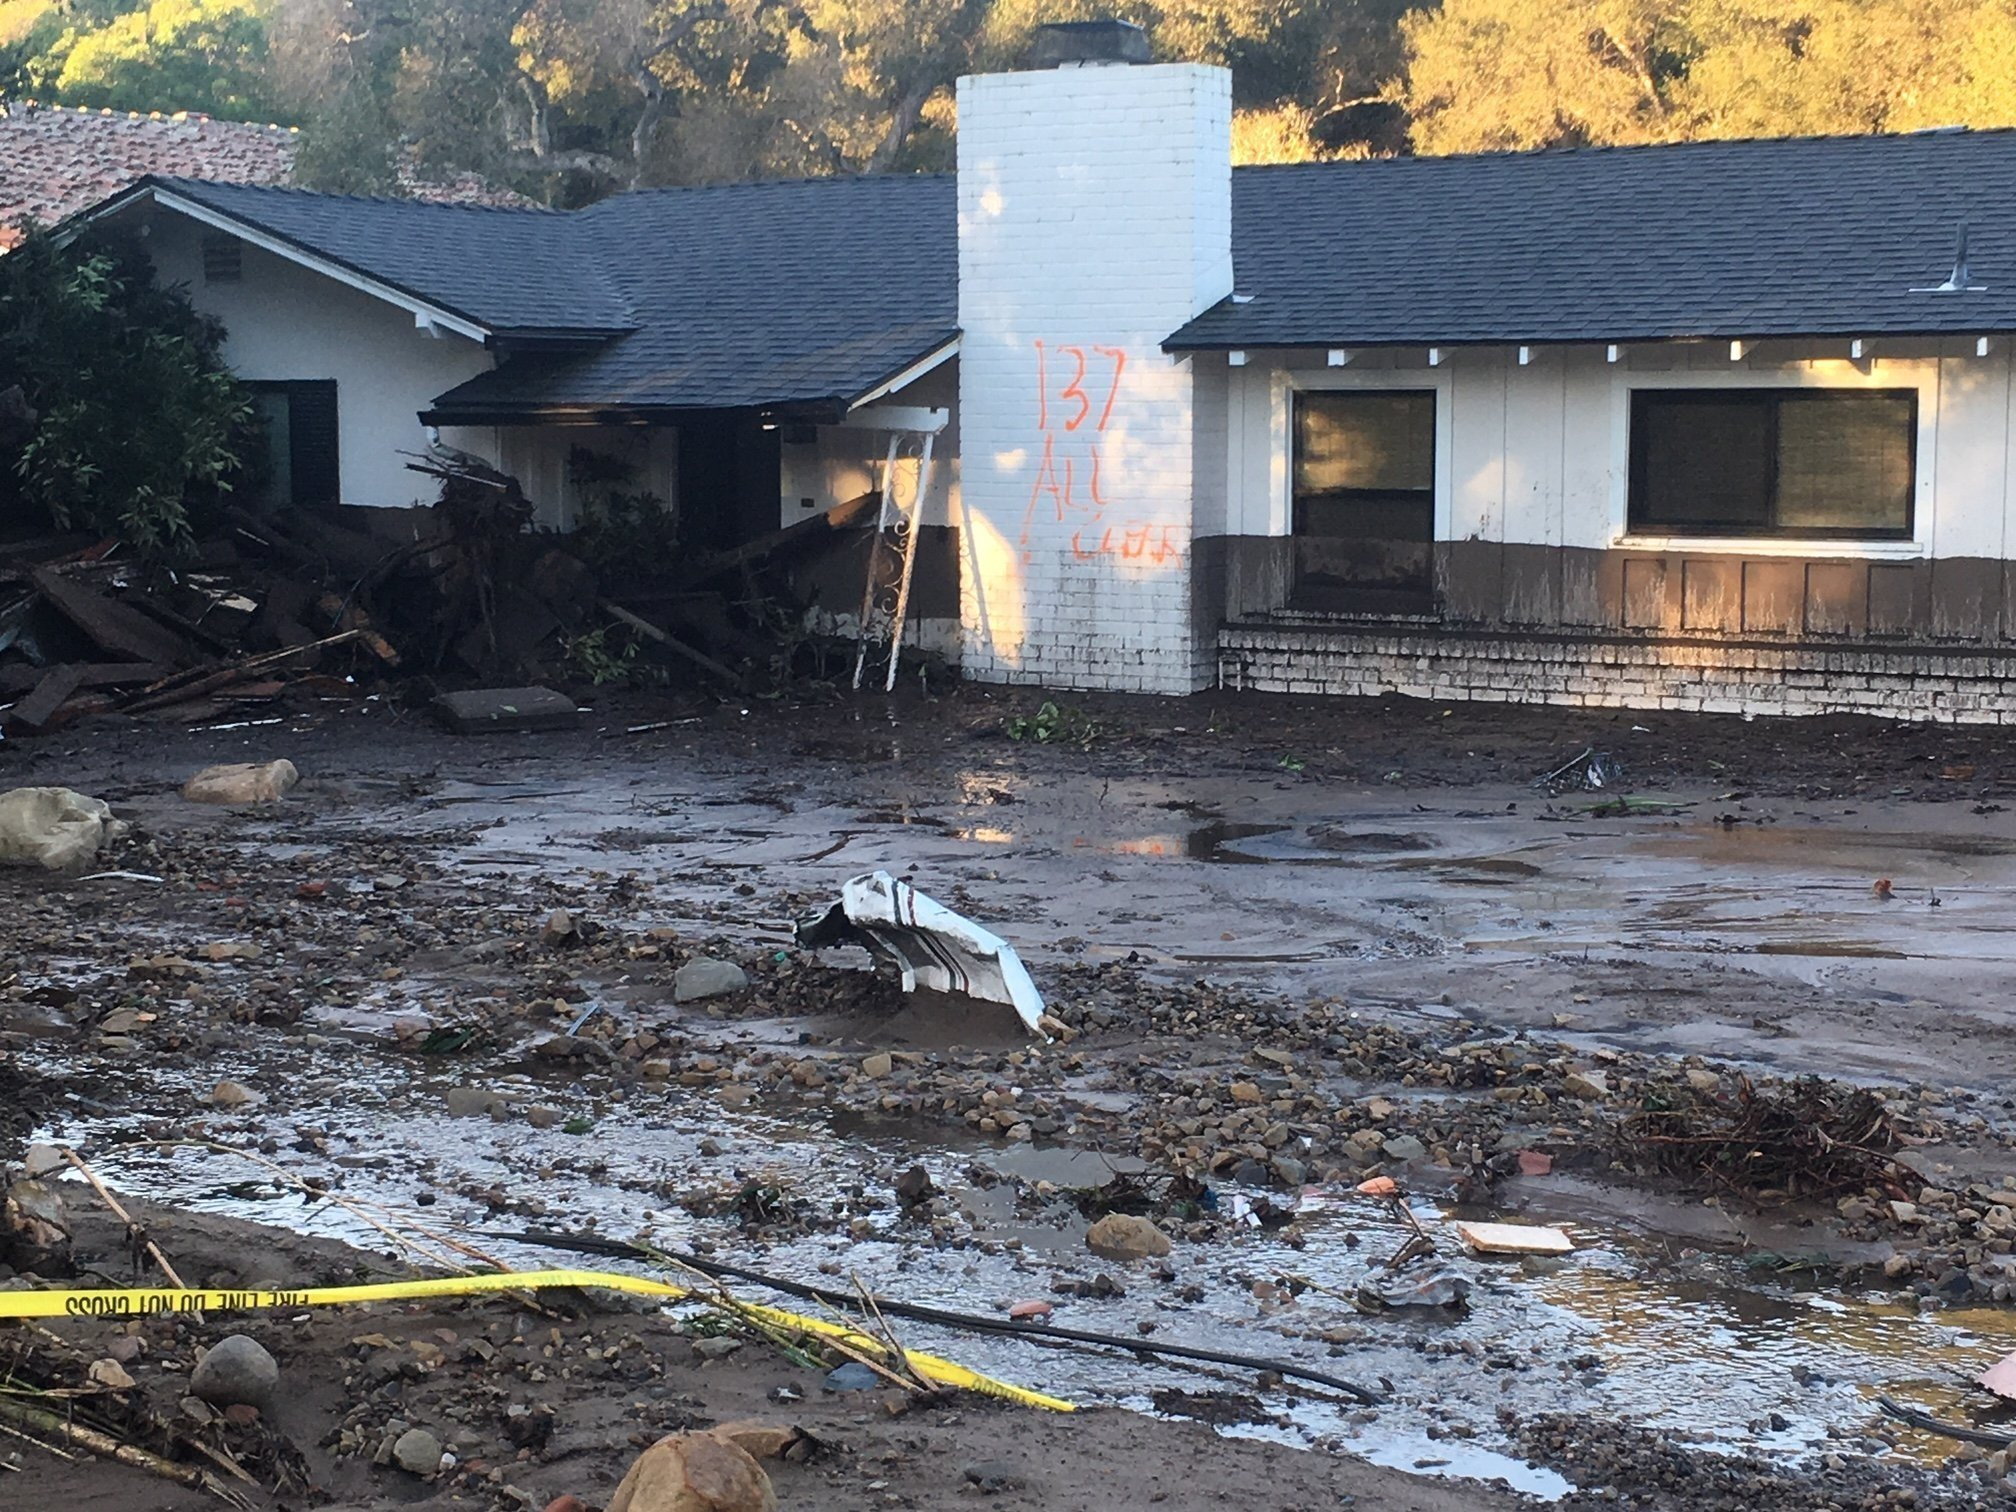 A home ruined in Montecito California due to mudslides